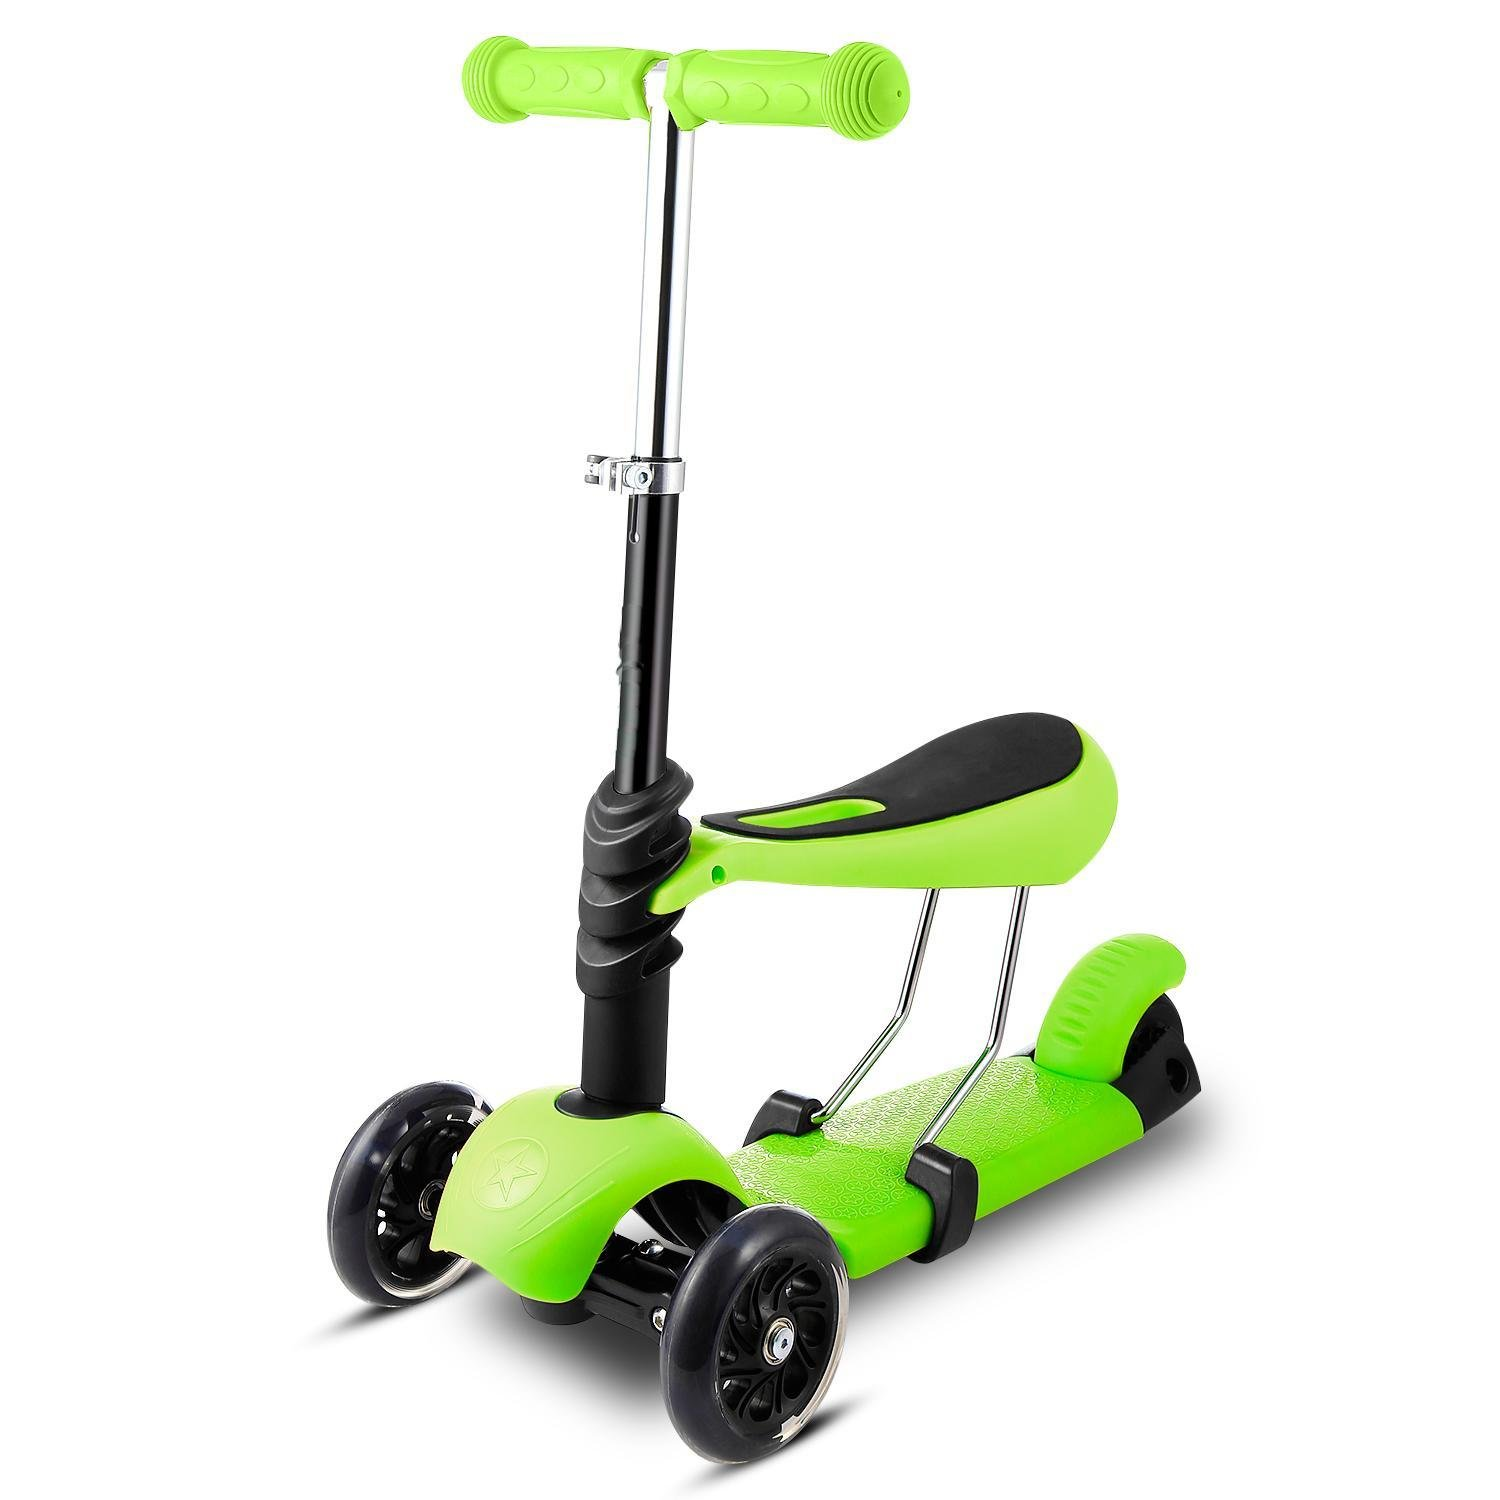 (US STOCK)Pesters 3-Wheel Kids Mini Kick Scooter, 3-in-1 Scooter with Removable Seat Adjustable Handlebar LED Flashing Wheels